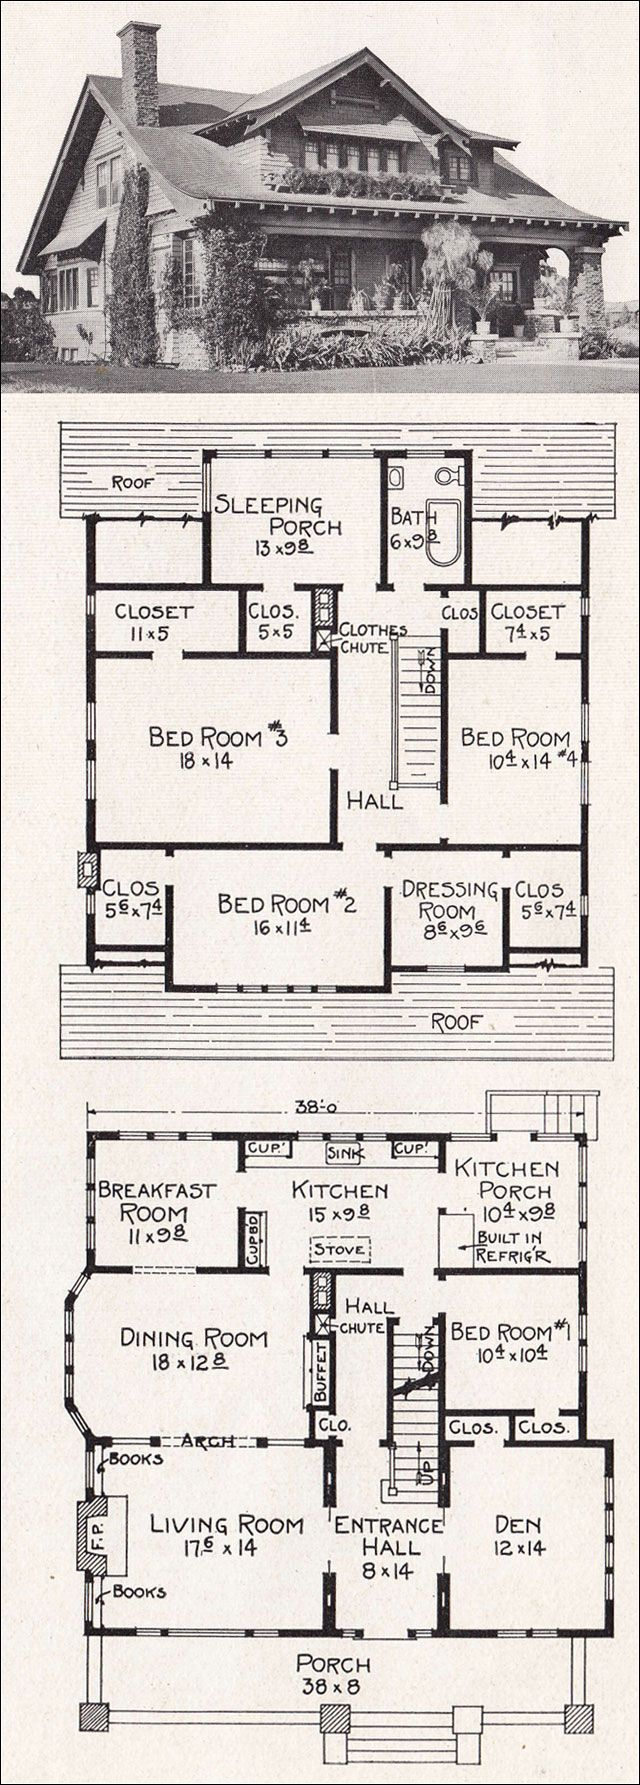 1000 images about house plans craftsman bungalow on On what is a bungalow house plan